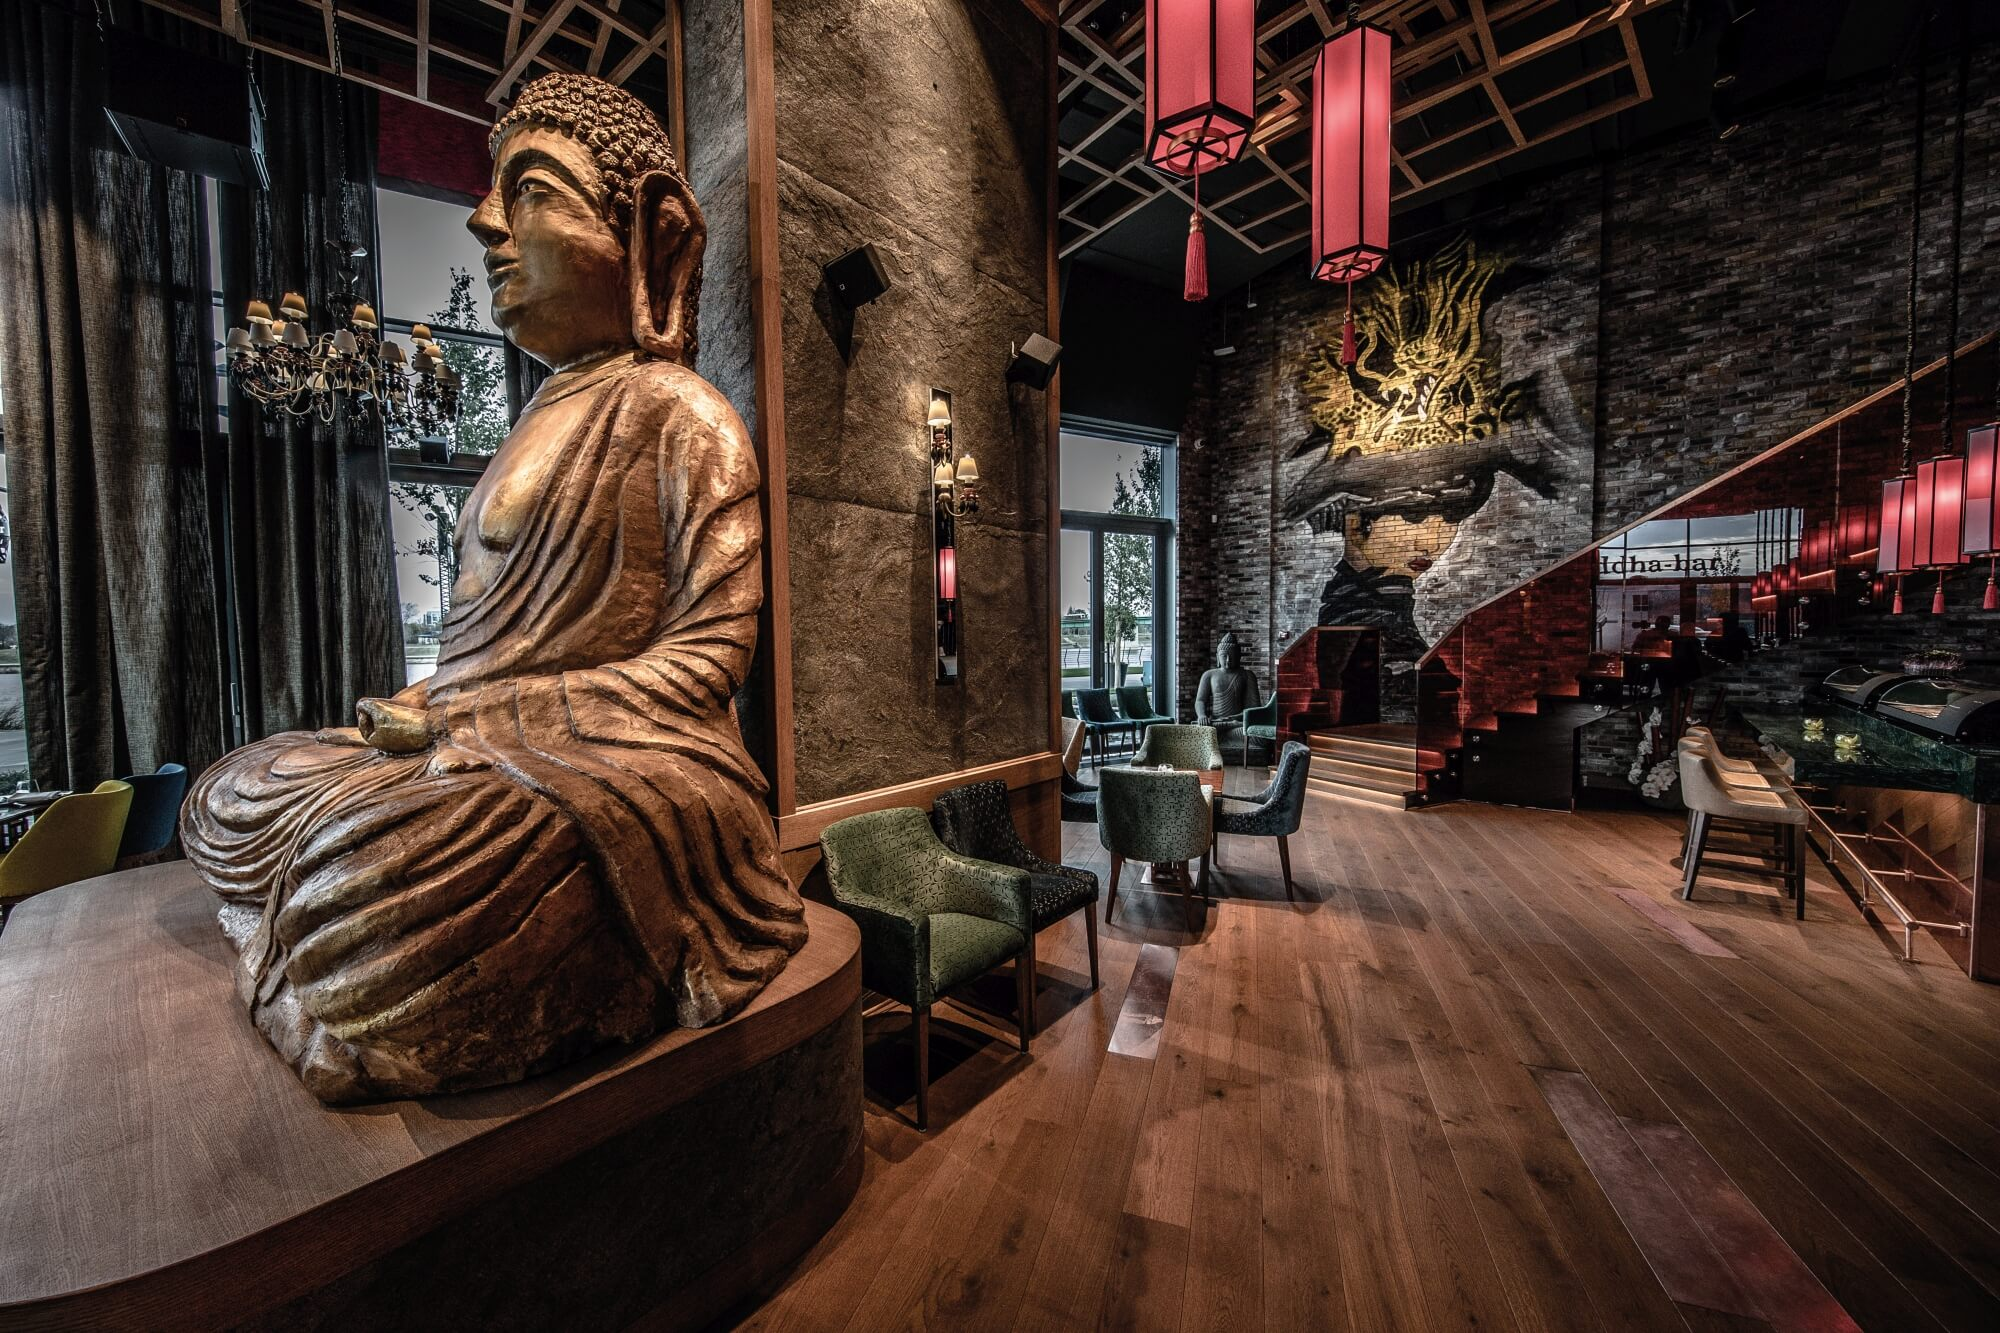 Buddha bar restaurant with hardwood floors.